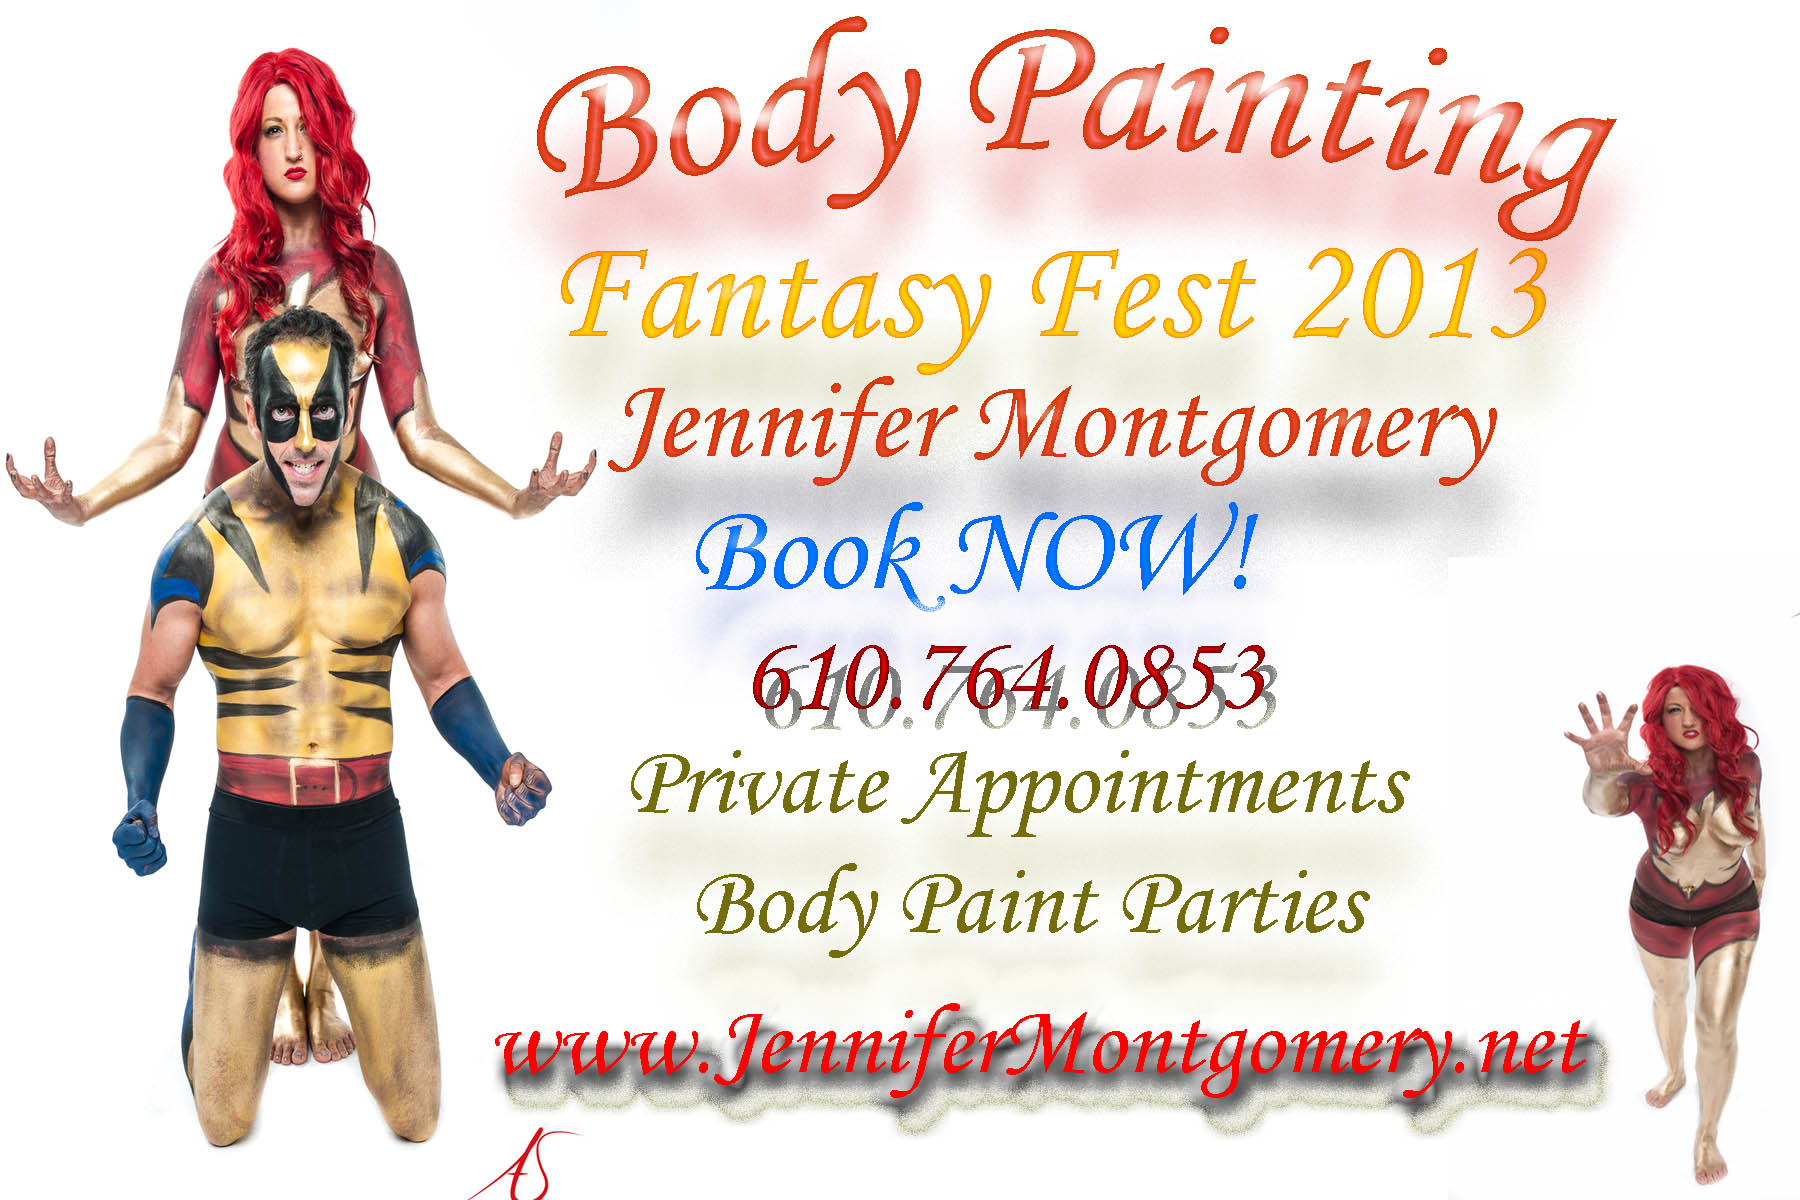 25 Jul Body Painting Fantasy Fest 2013 Key West Florida